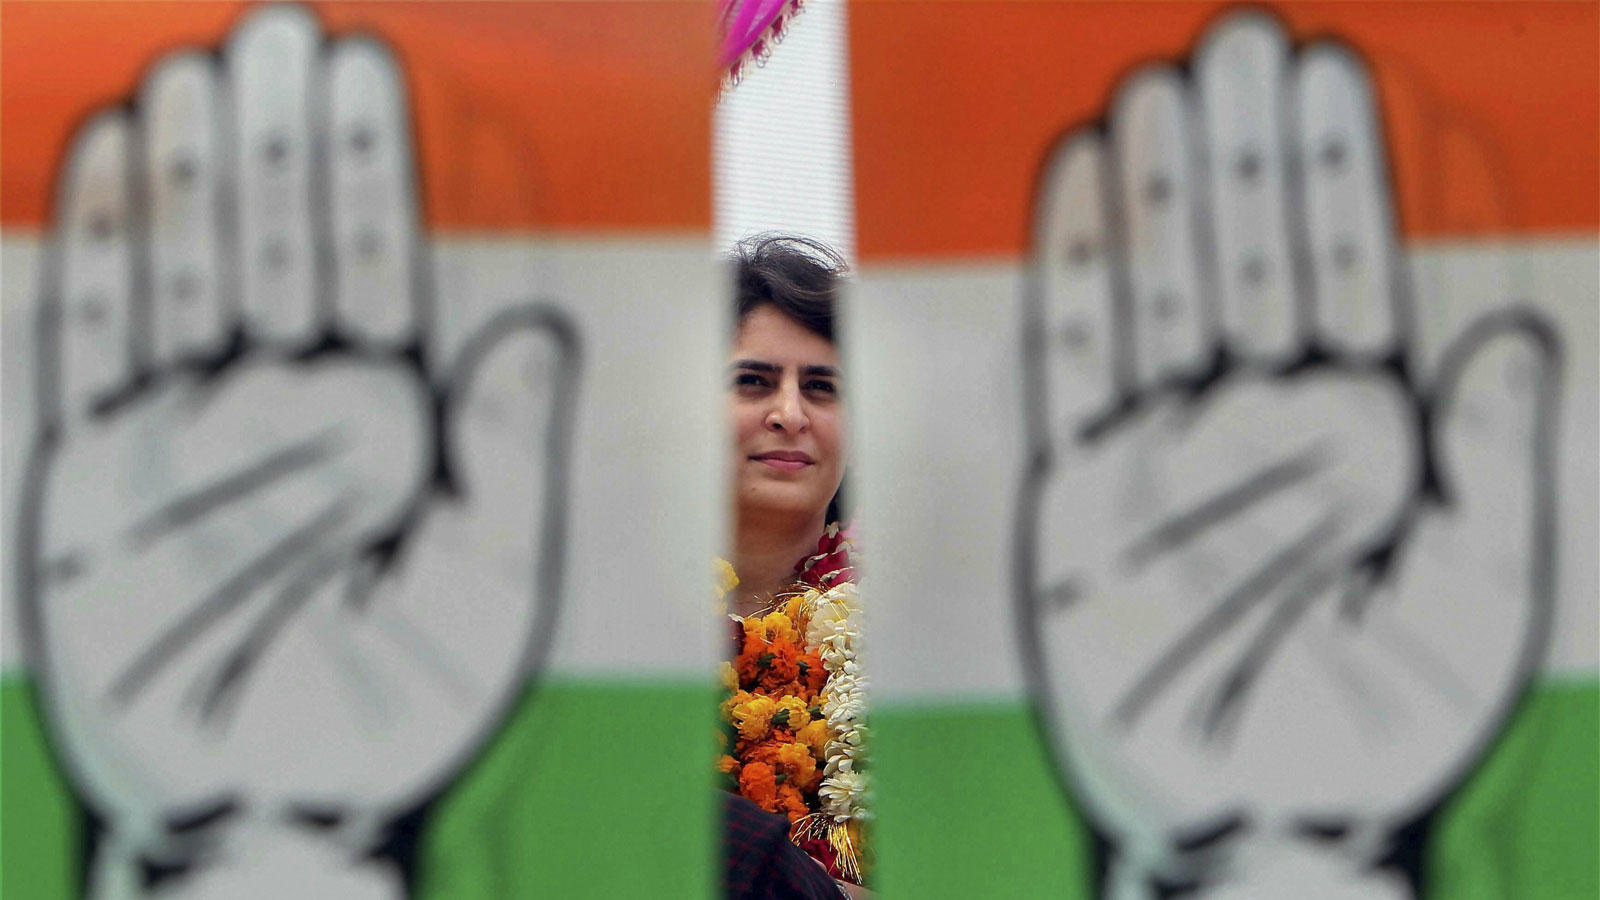 Can Priyanka Gandhi Vadra gain votes for Congress?